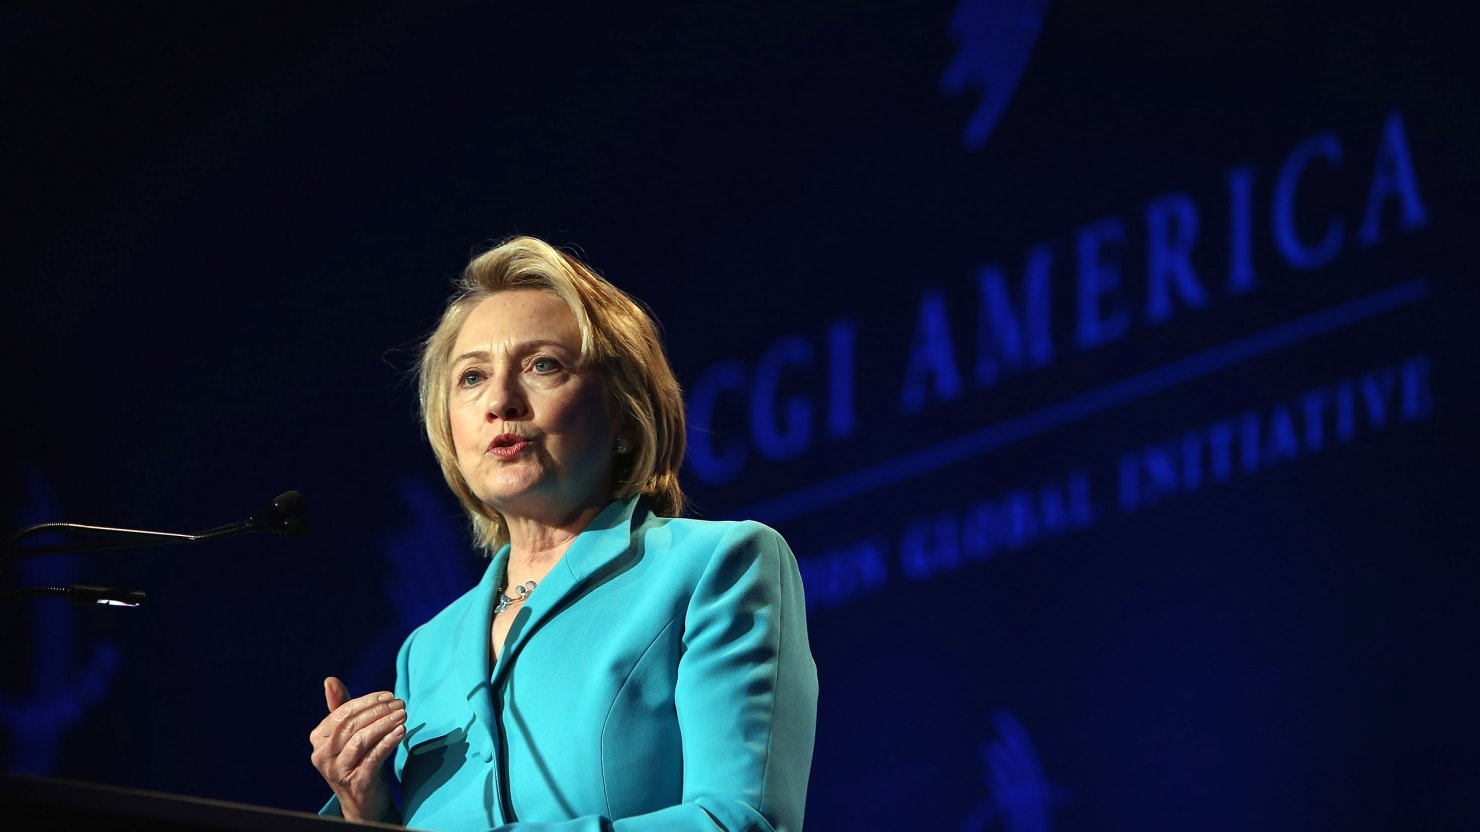 16 Reasons Why Hillary Clinton Will Win 2016